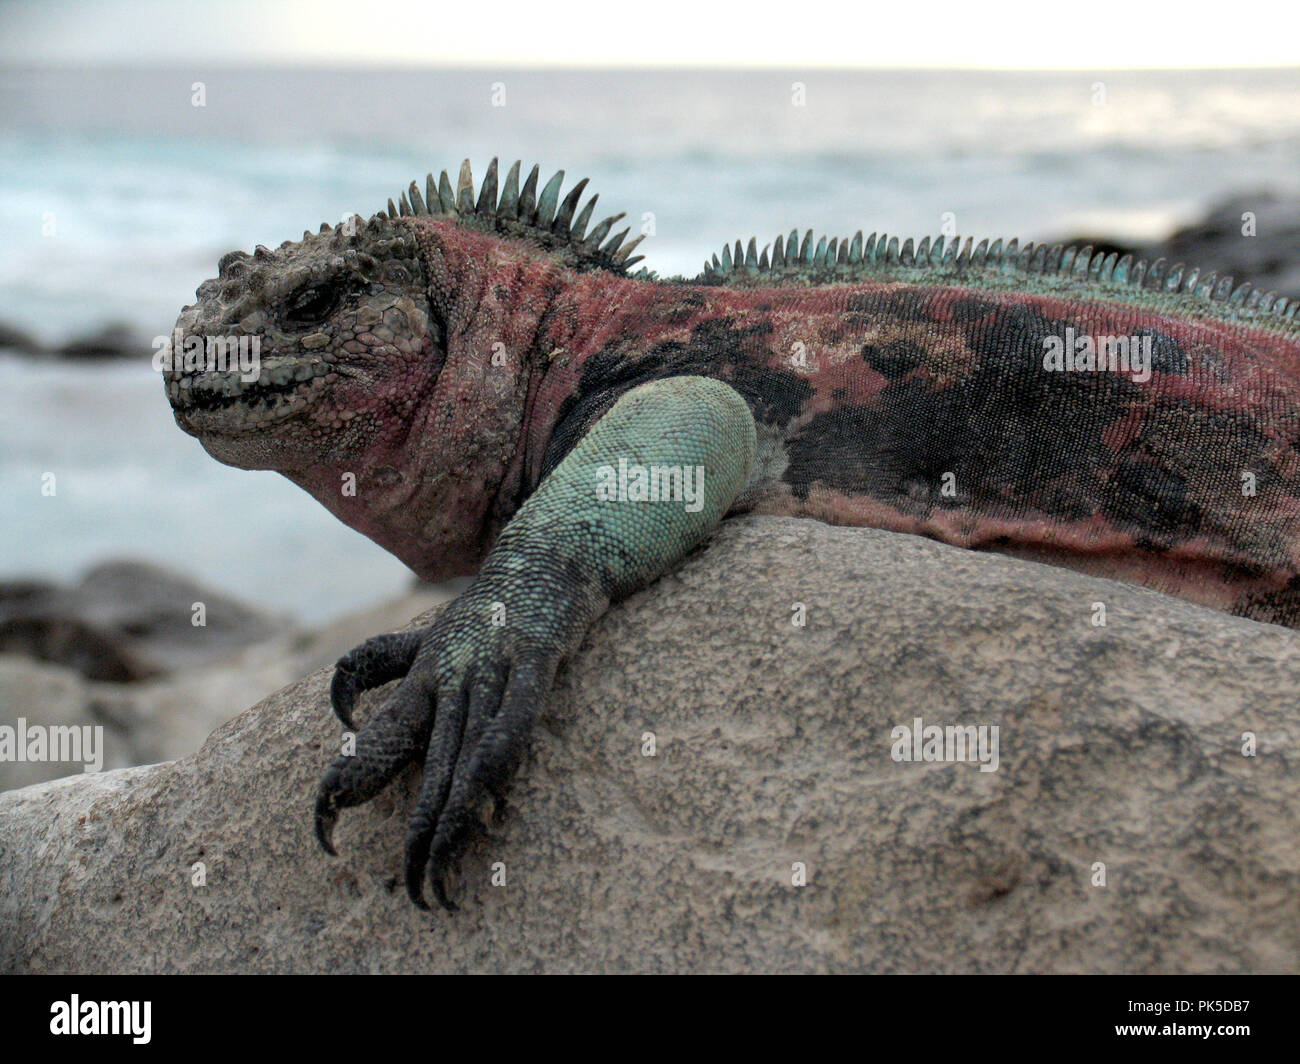 Marine Iguana Ambyrhynchus cristatus  Gal‡pagos islands have developed some of the most unique forms of life on the planet, highly adapted to the hars - Stock Image